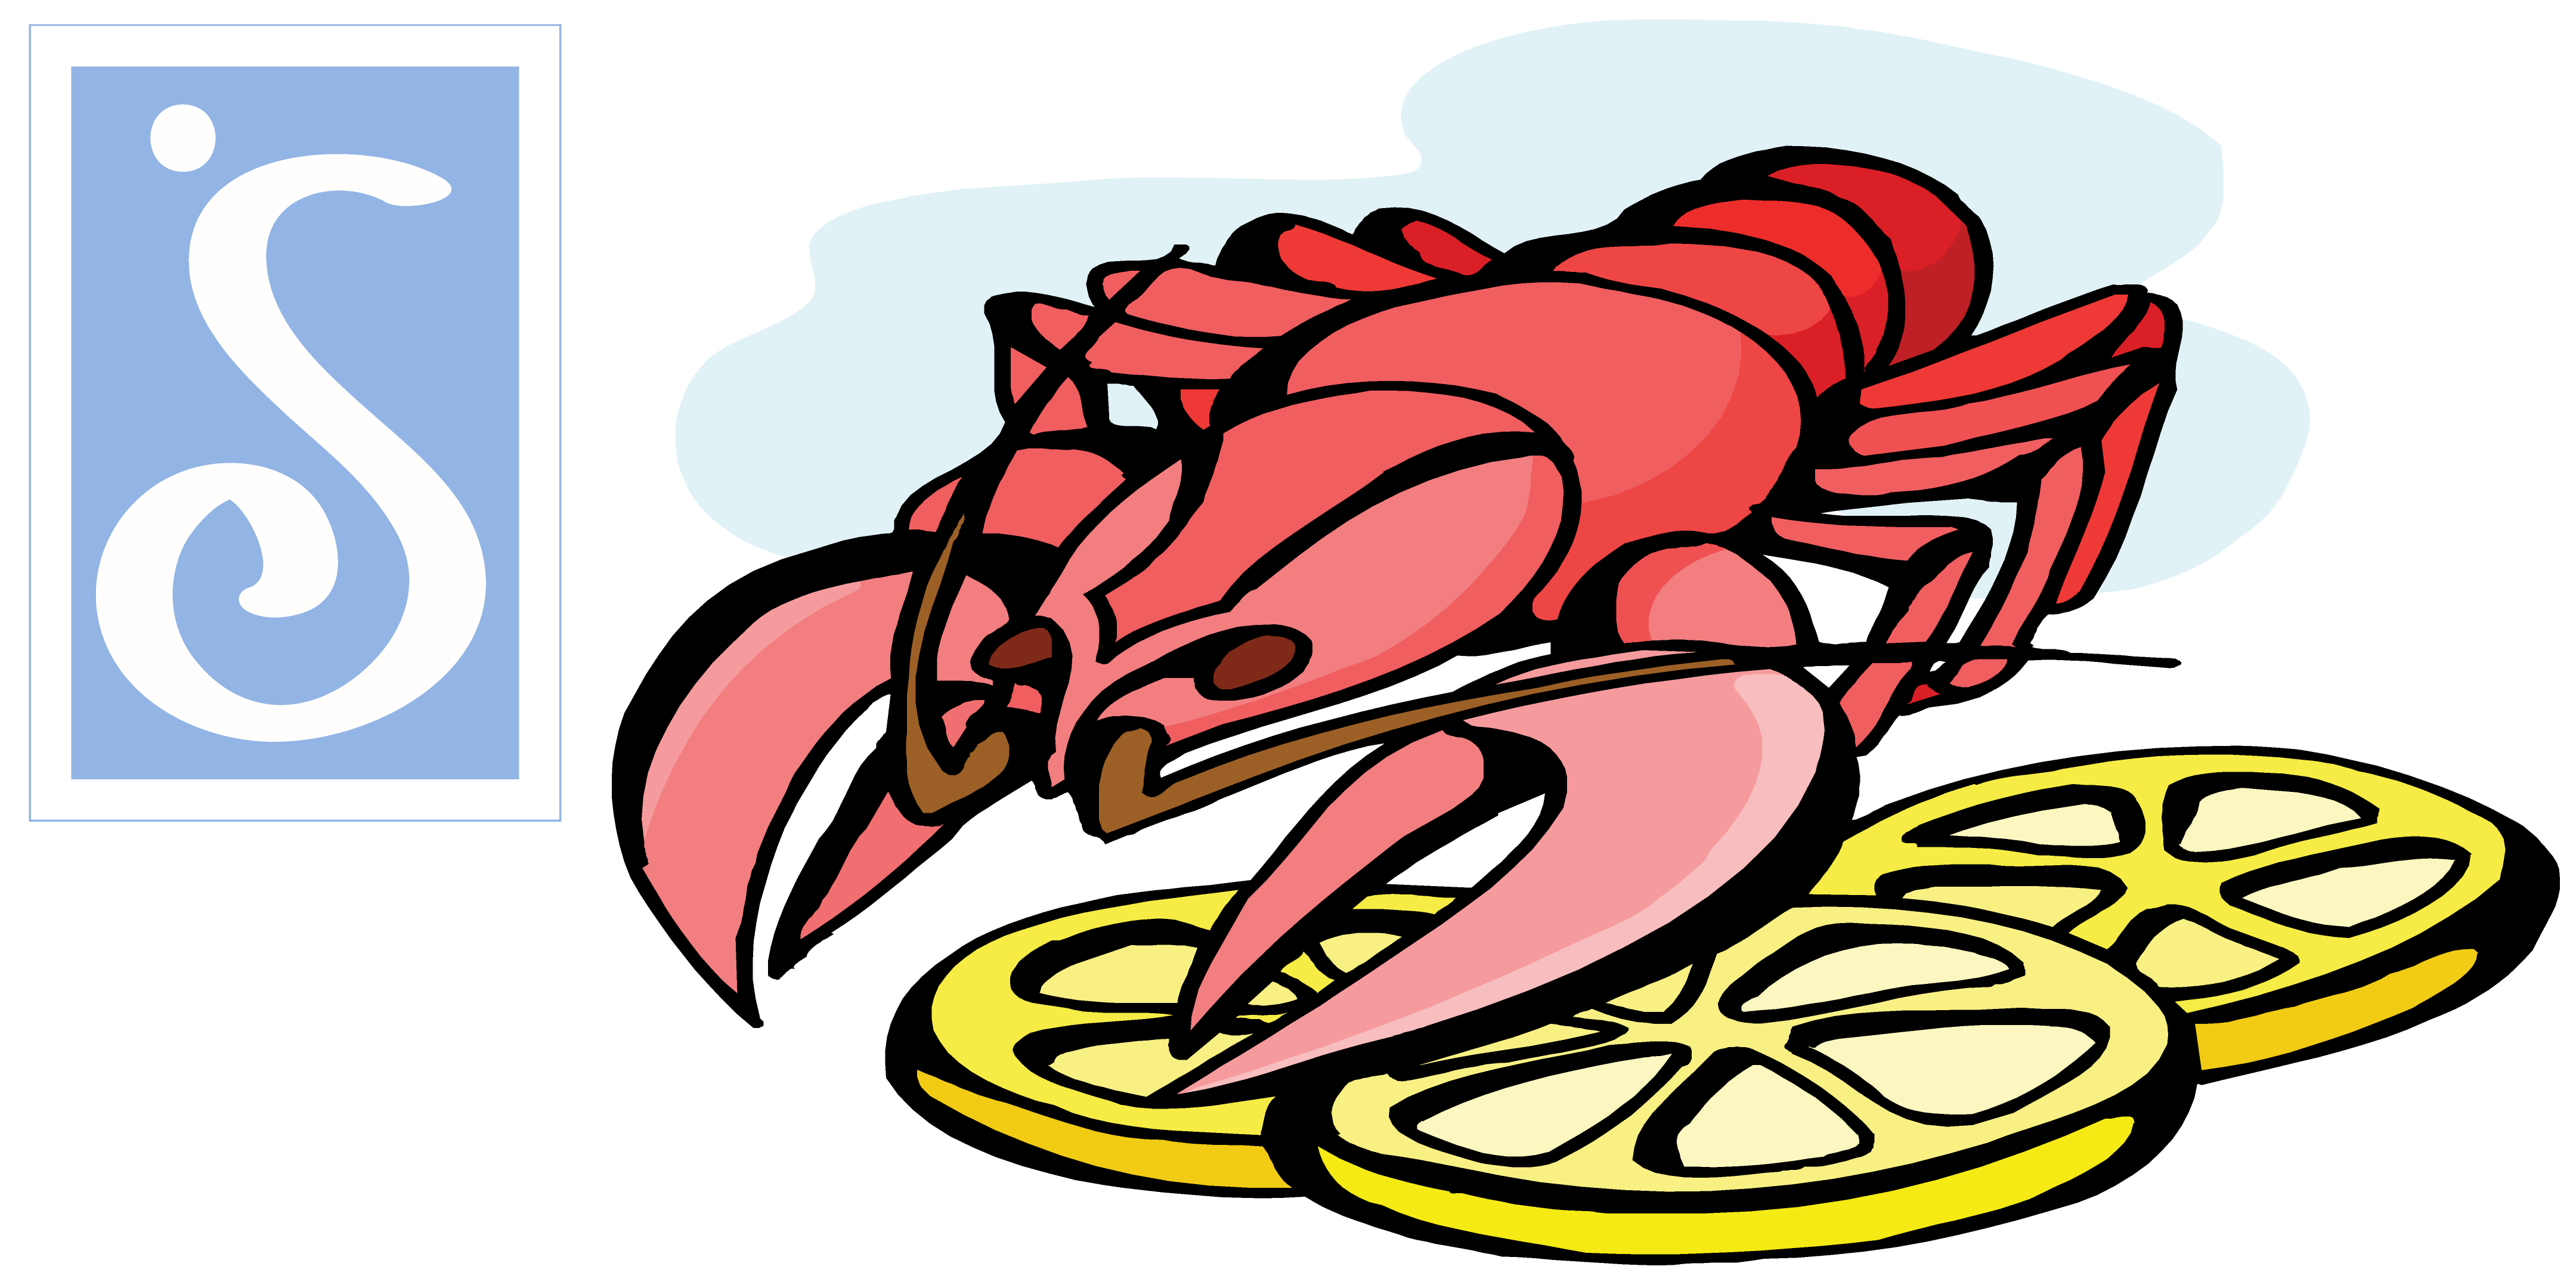 Lunch clipart business luncheon. Rescheduled annual lobster dinner